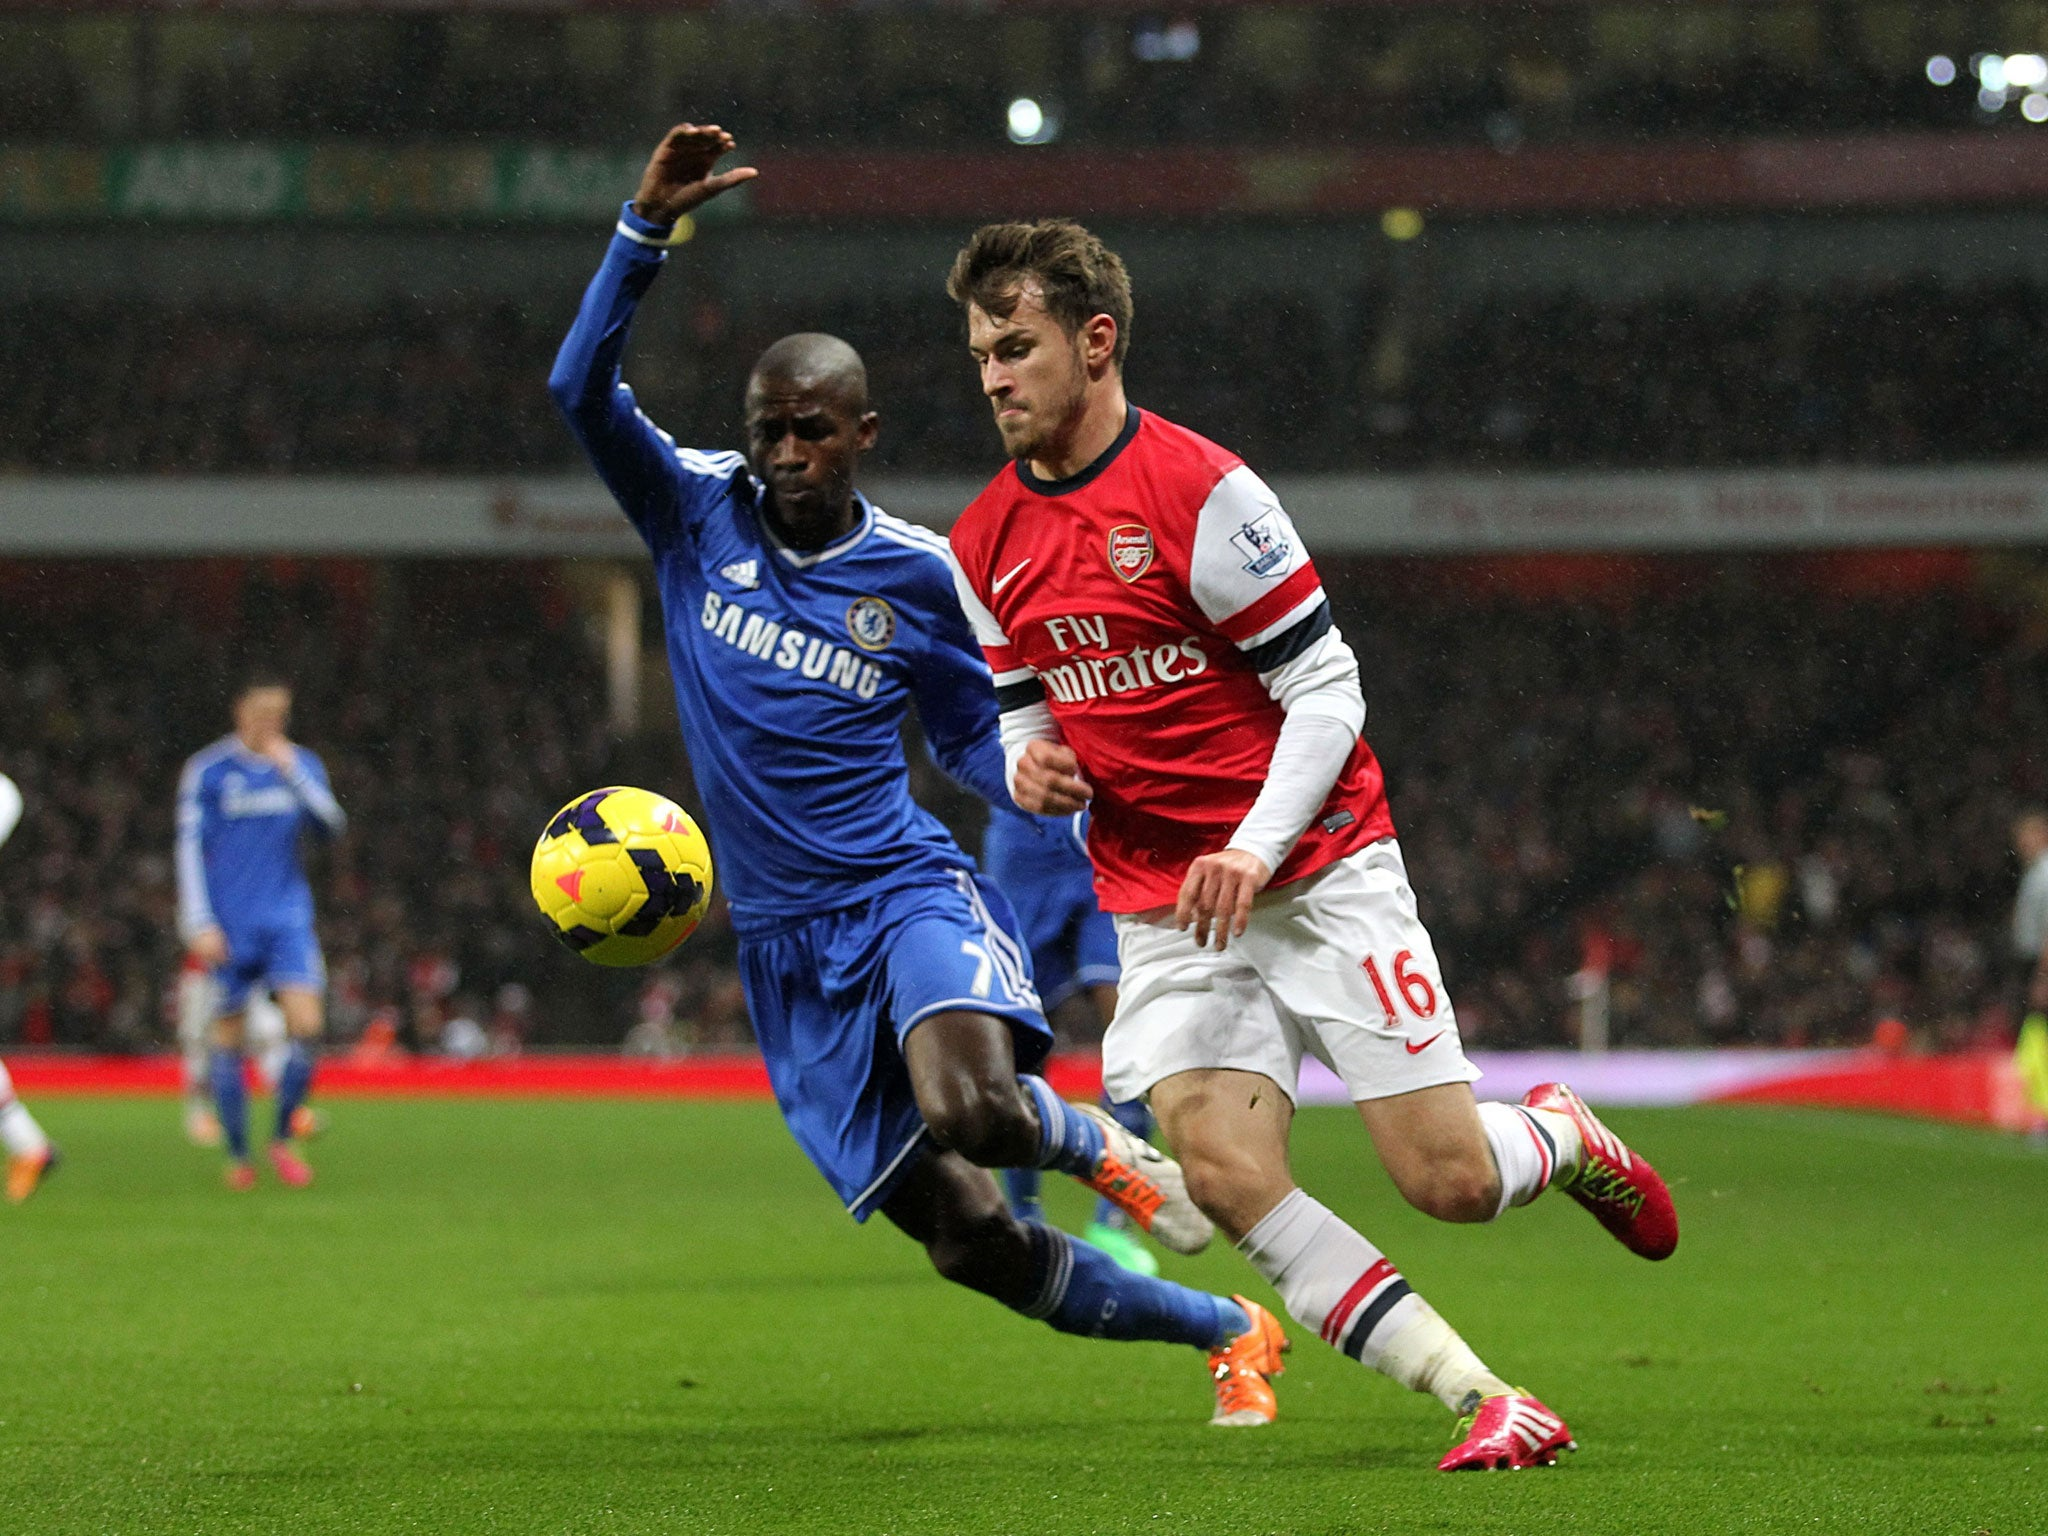 Arsenal 0 Chelsea 0 Match Report: Referee Mistakes